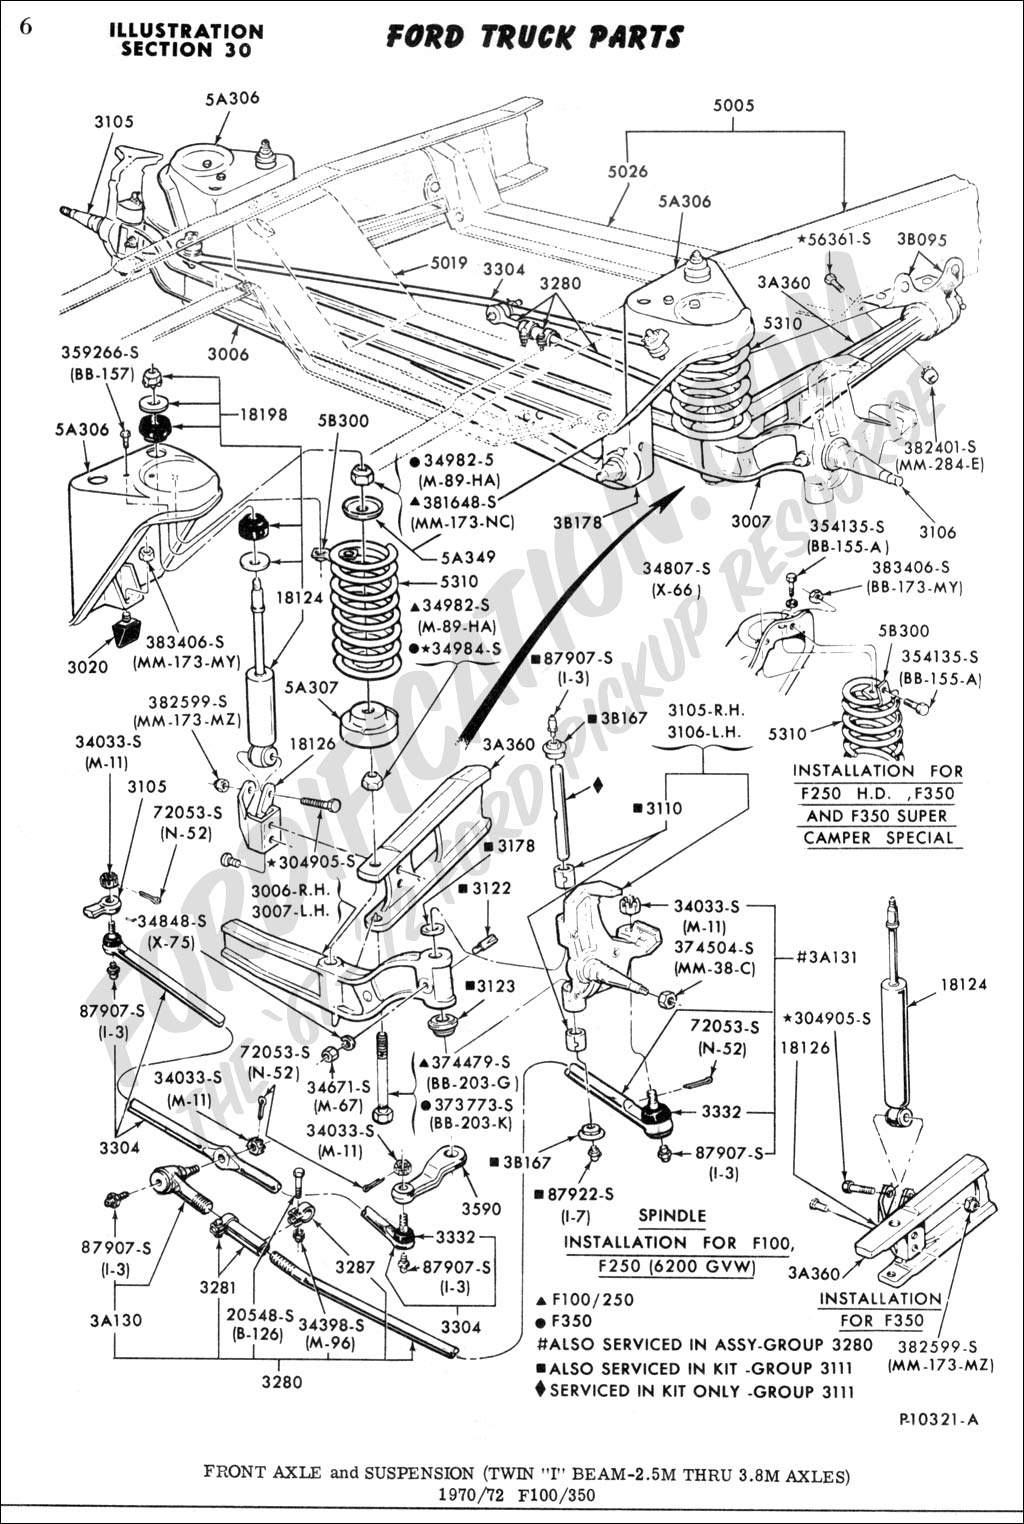 1968 f100 wiring diagram burglar alarm system ford truck technical drawings and schematics - section a front/rear axle assemblies ...